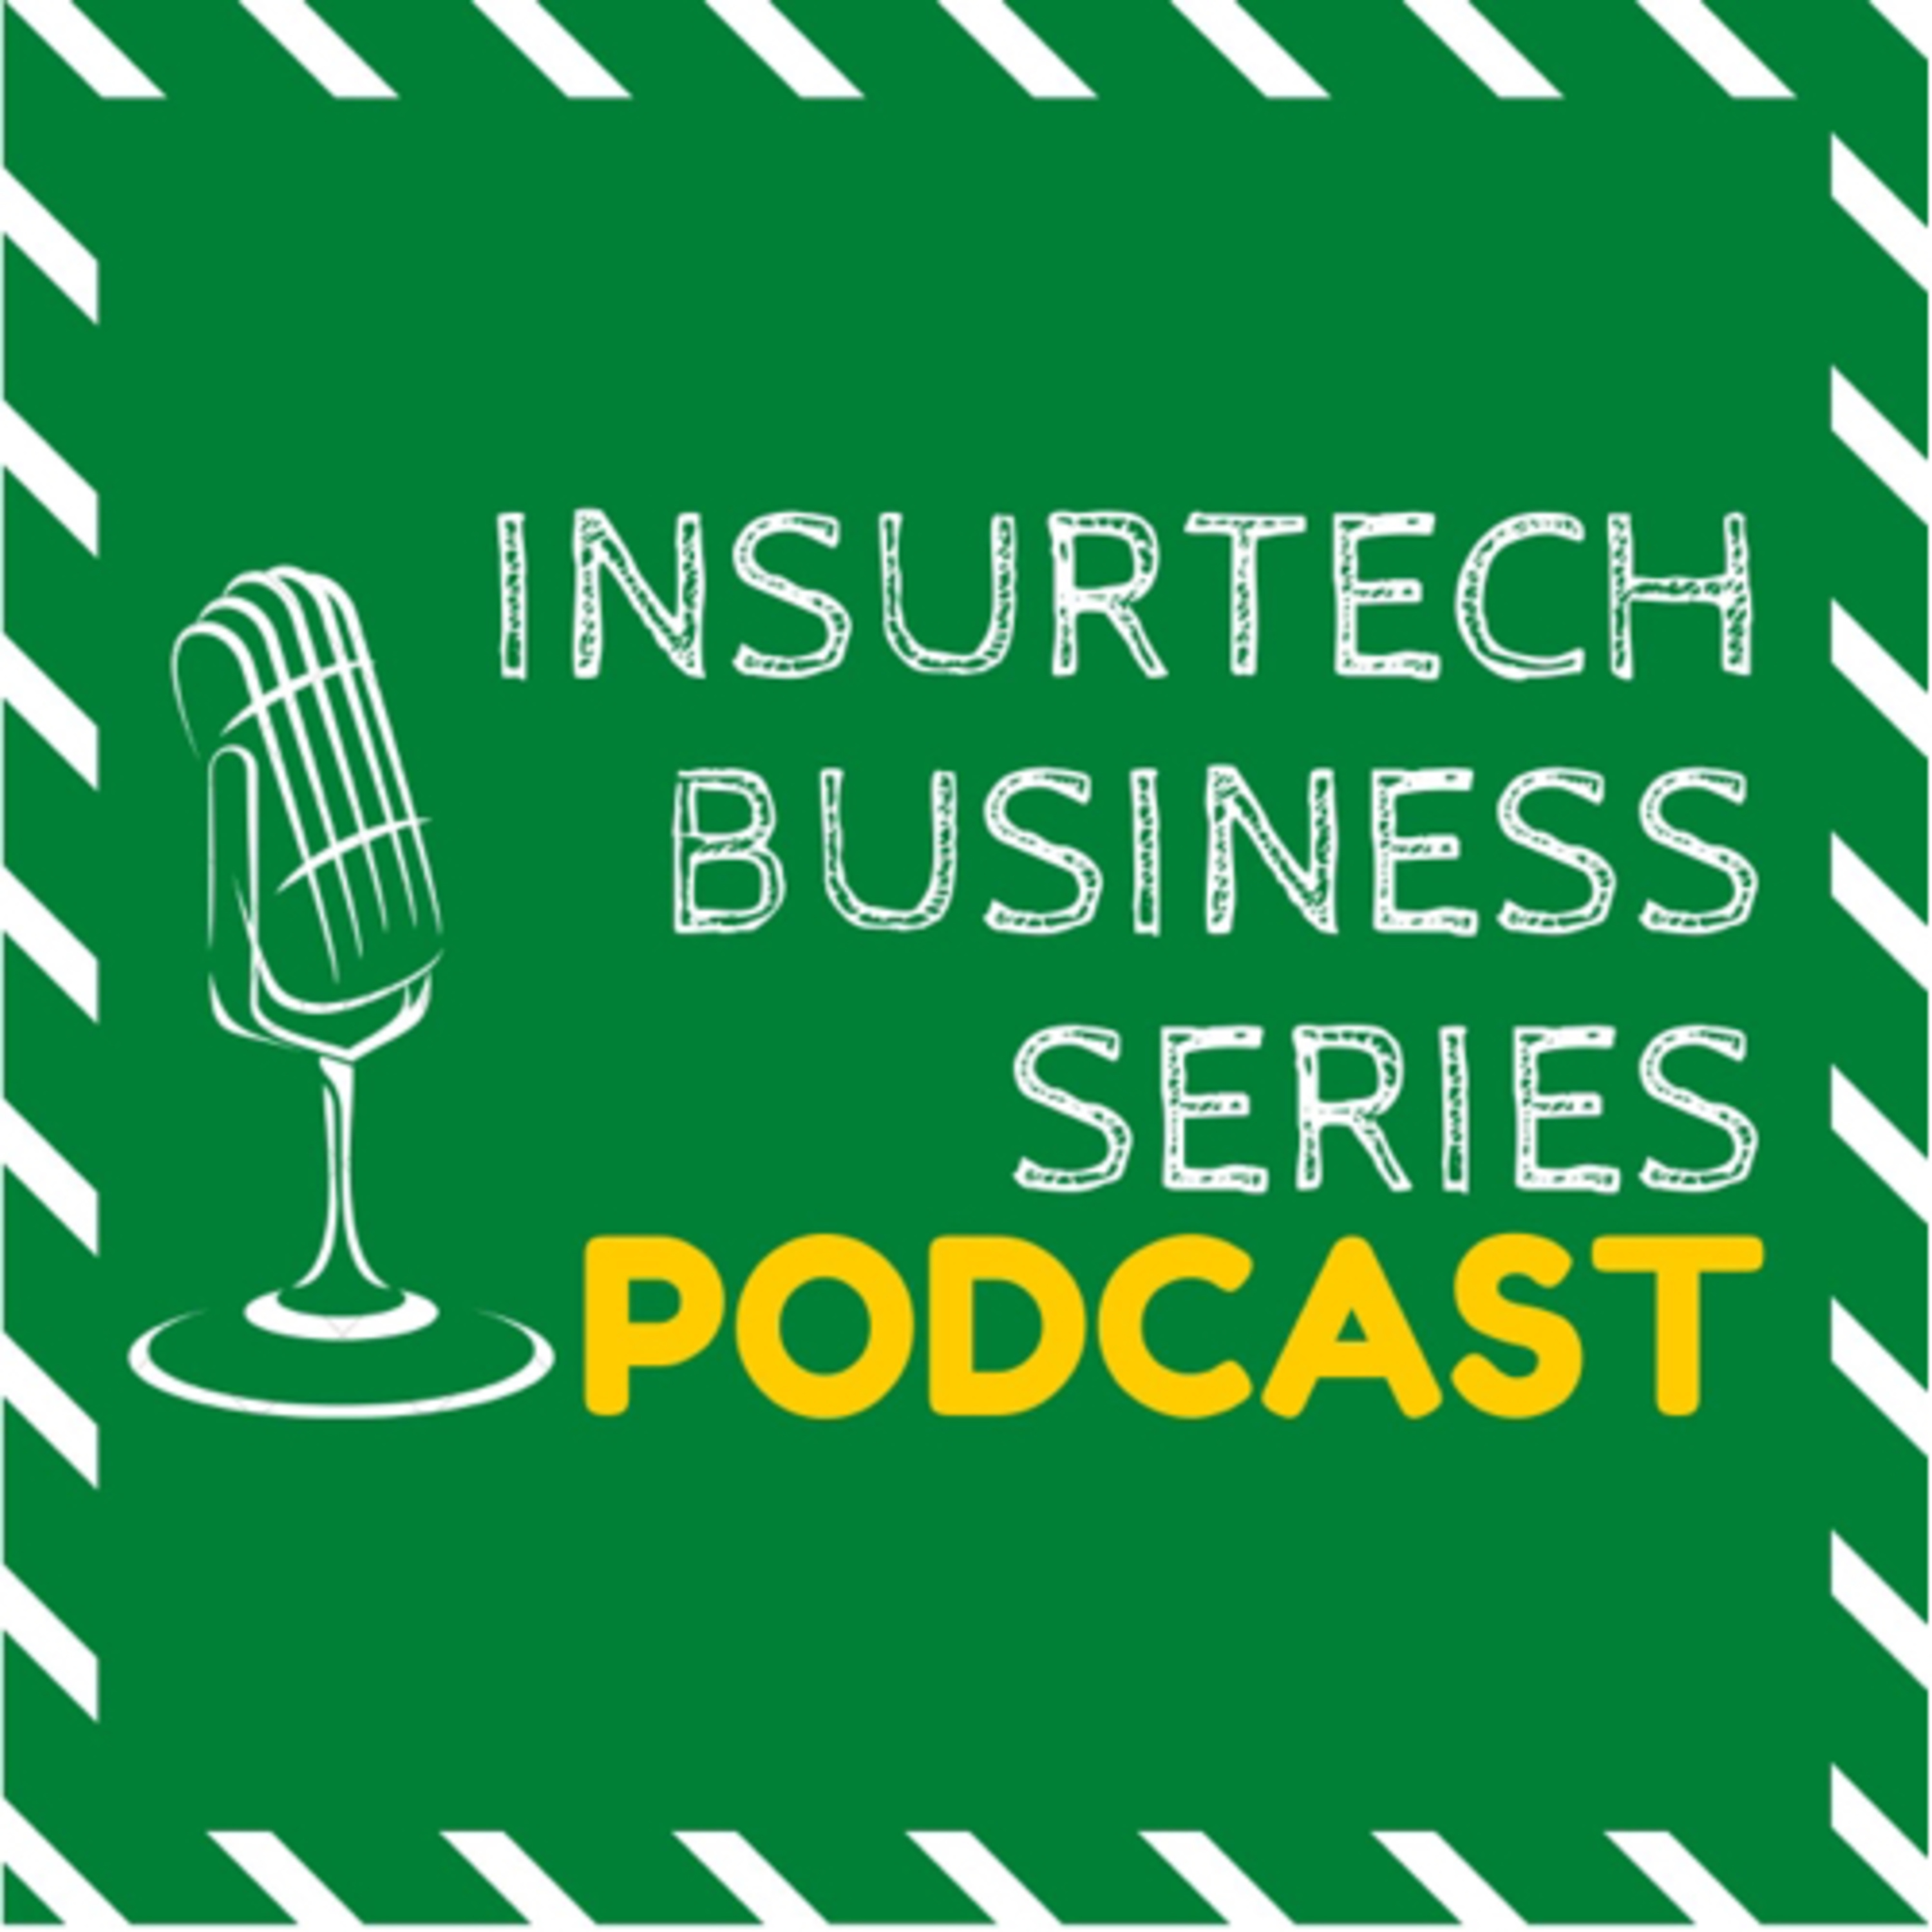 InsurTech Business Series on Jamit